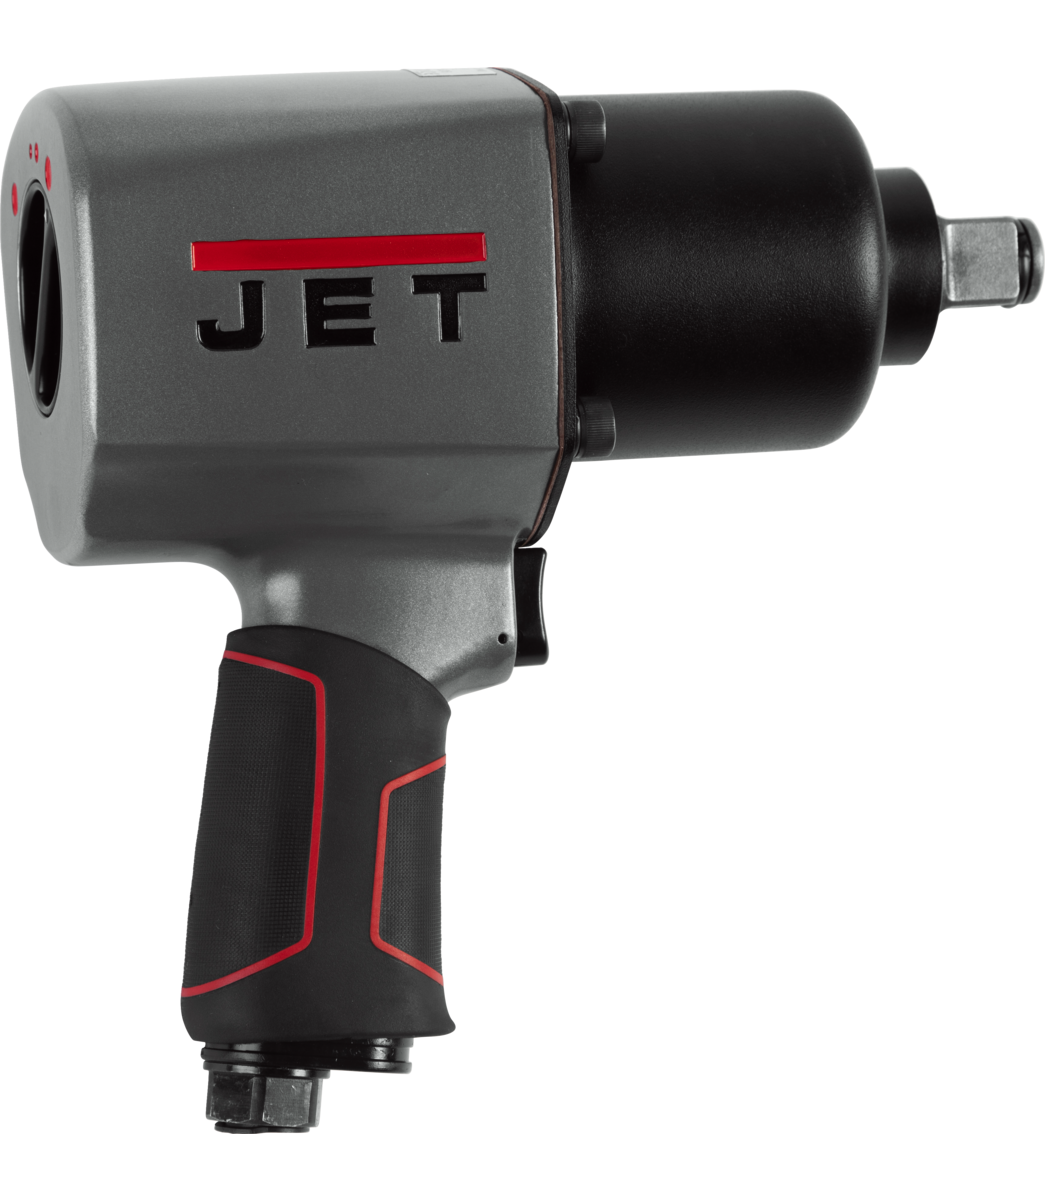 "JAT-105 3/4"" IMPCT WRNCH 1500 ft-lbs"